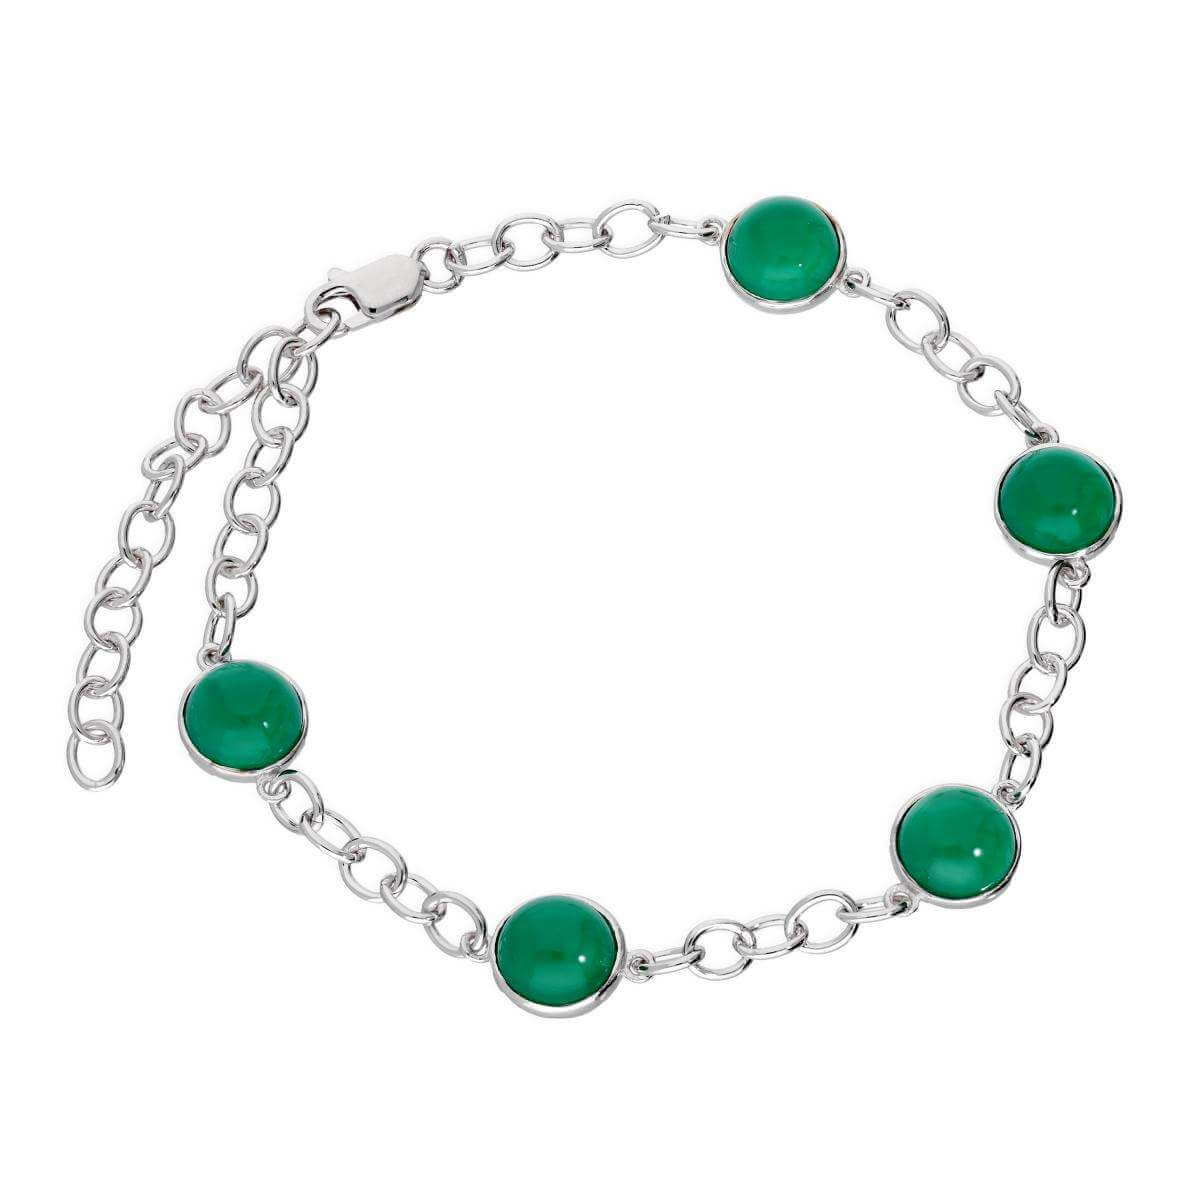 Sterling Silver Round Genuine Green Agate 7.5 - 9.5 Inch Bracelet